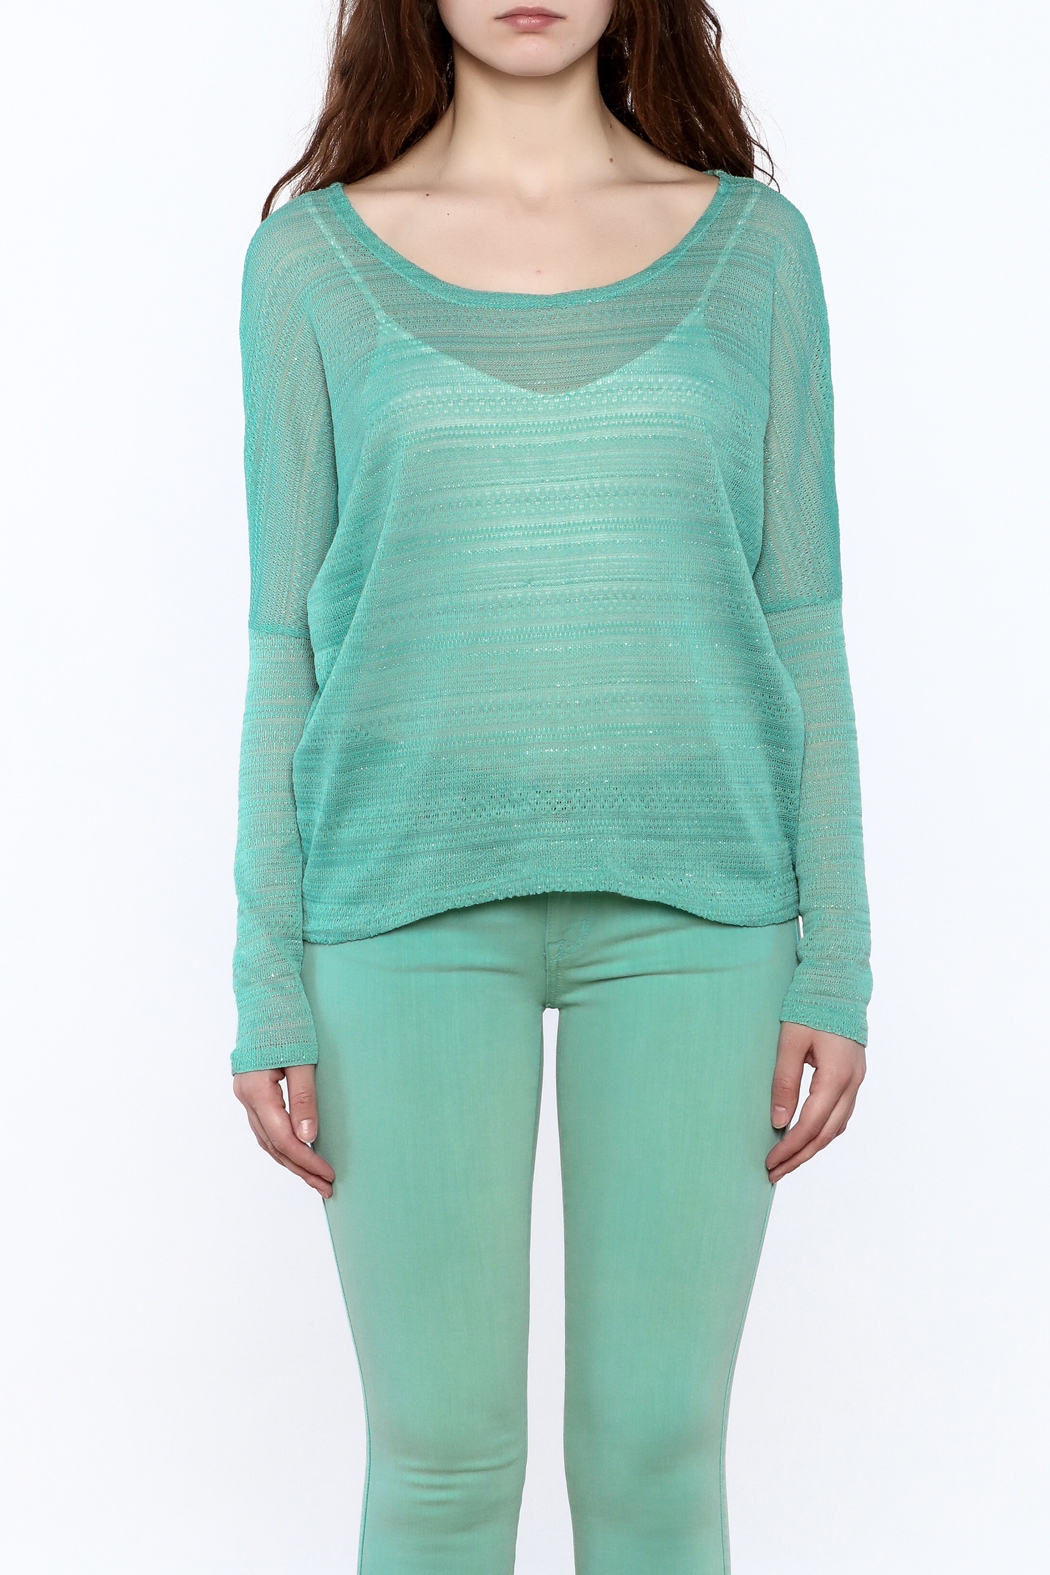 Elise Mint Green Knit Top - Side Cropped Image